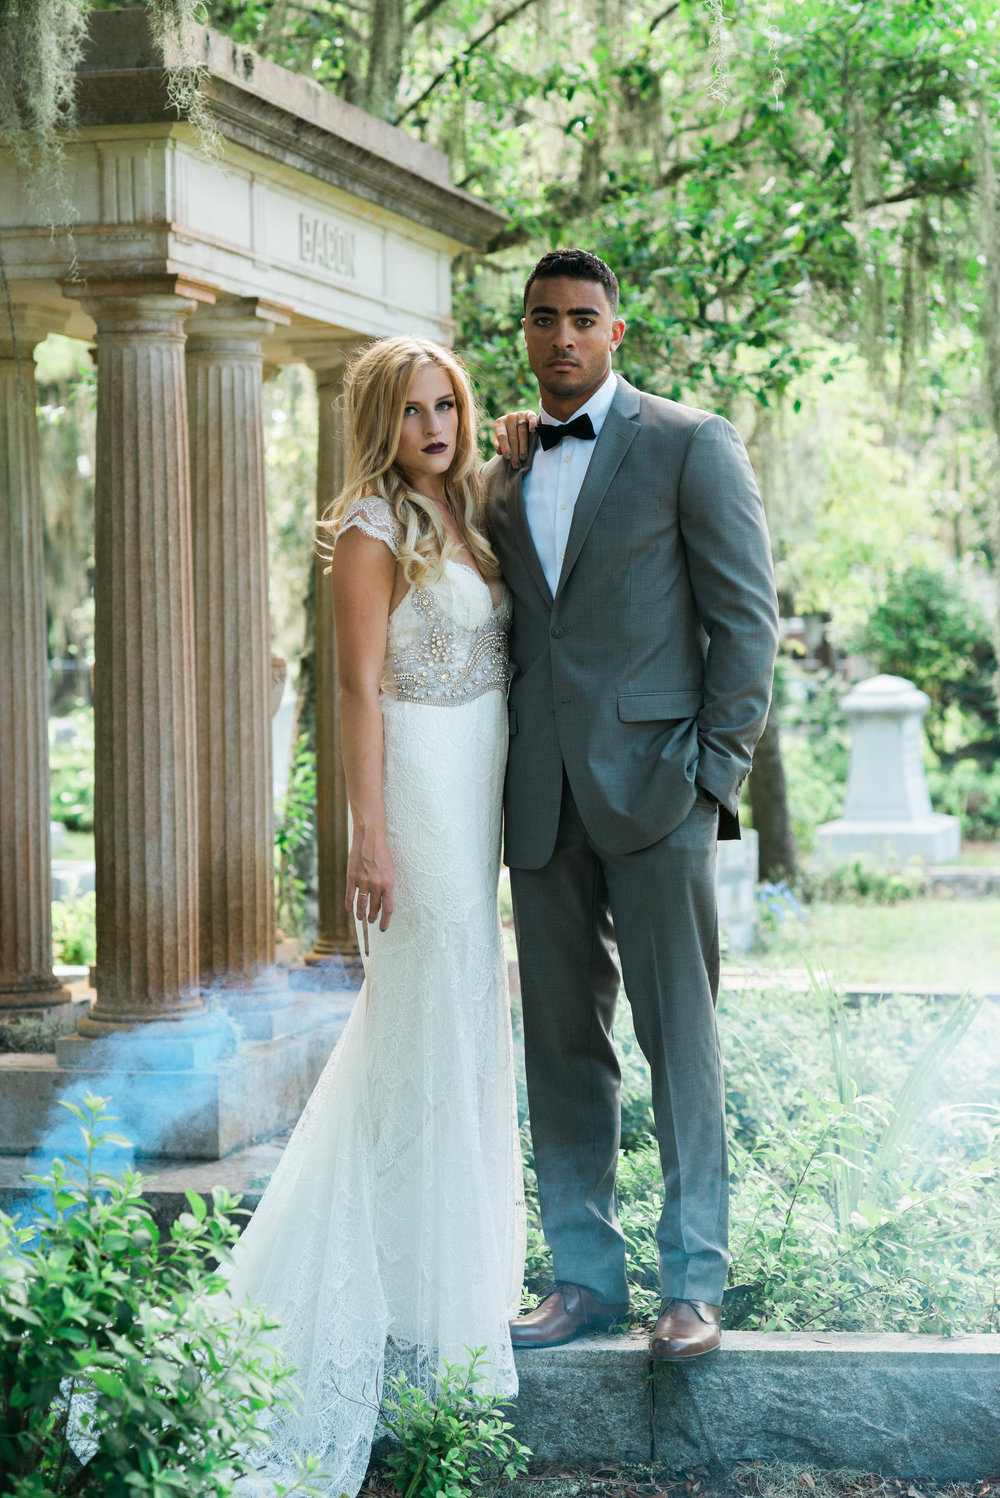 callie-beale-photography-Bonaventure-cemetery-michelle-royal-makeup-cemetery-wedding-ivory-and-beau-wedding-planning-anna-campbell-harper-savannah-bridal-boutique-savannah-wedding-dresses-savannah-weddings-6.jpg